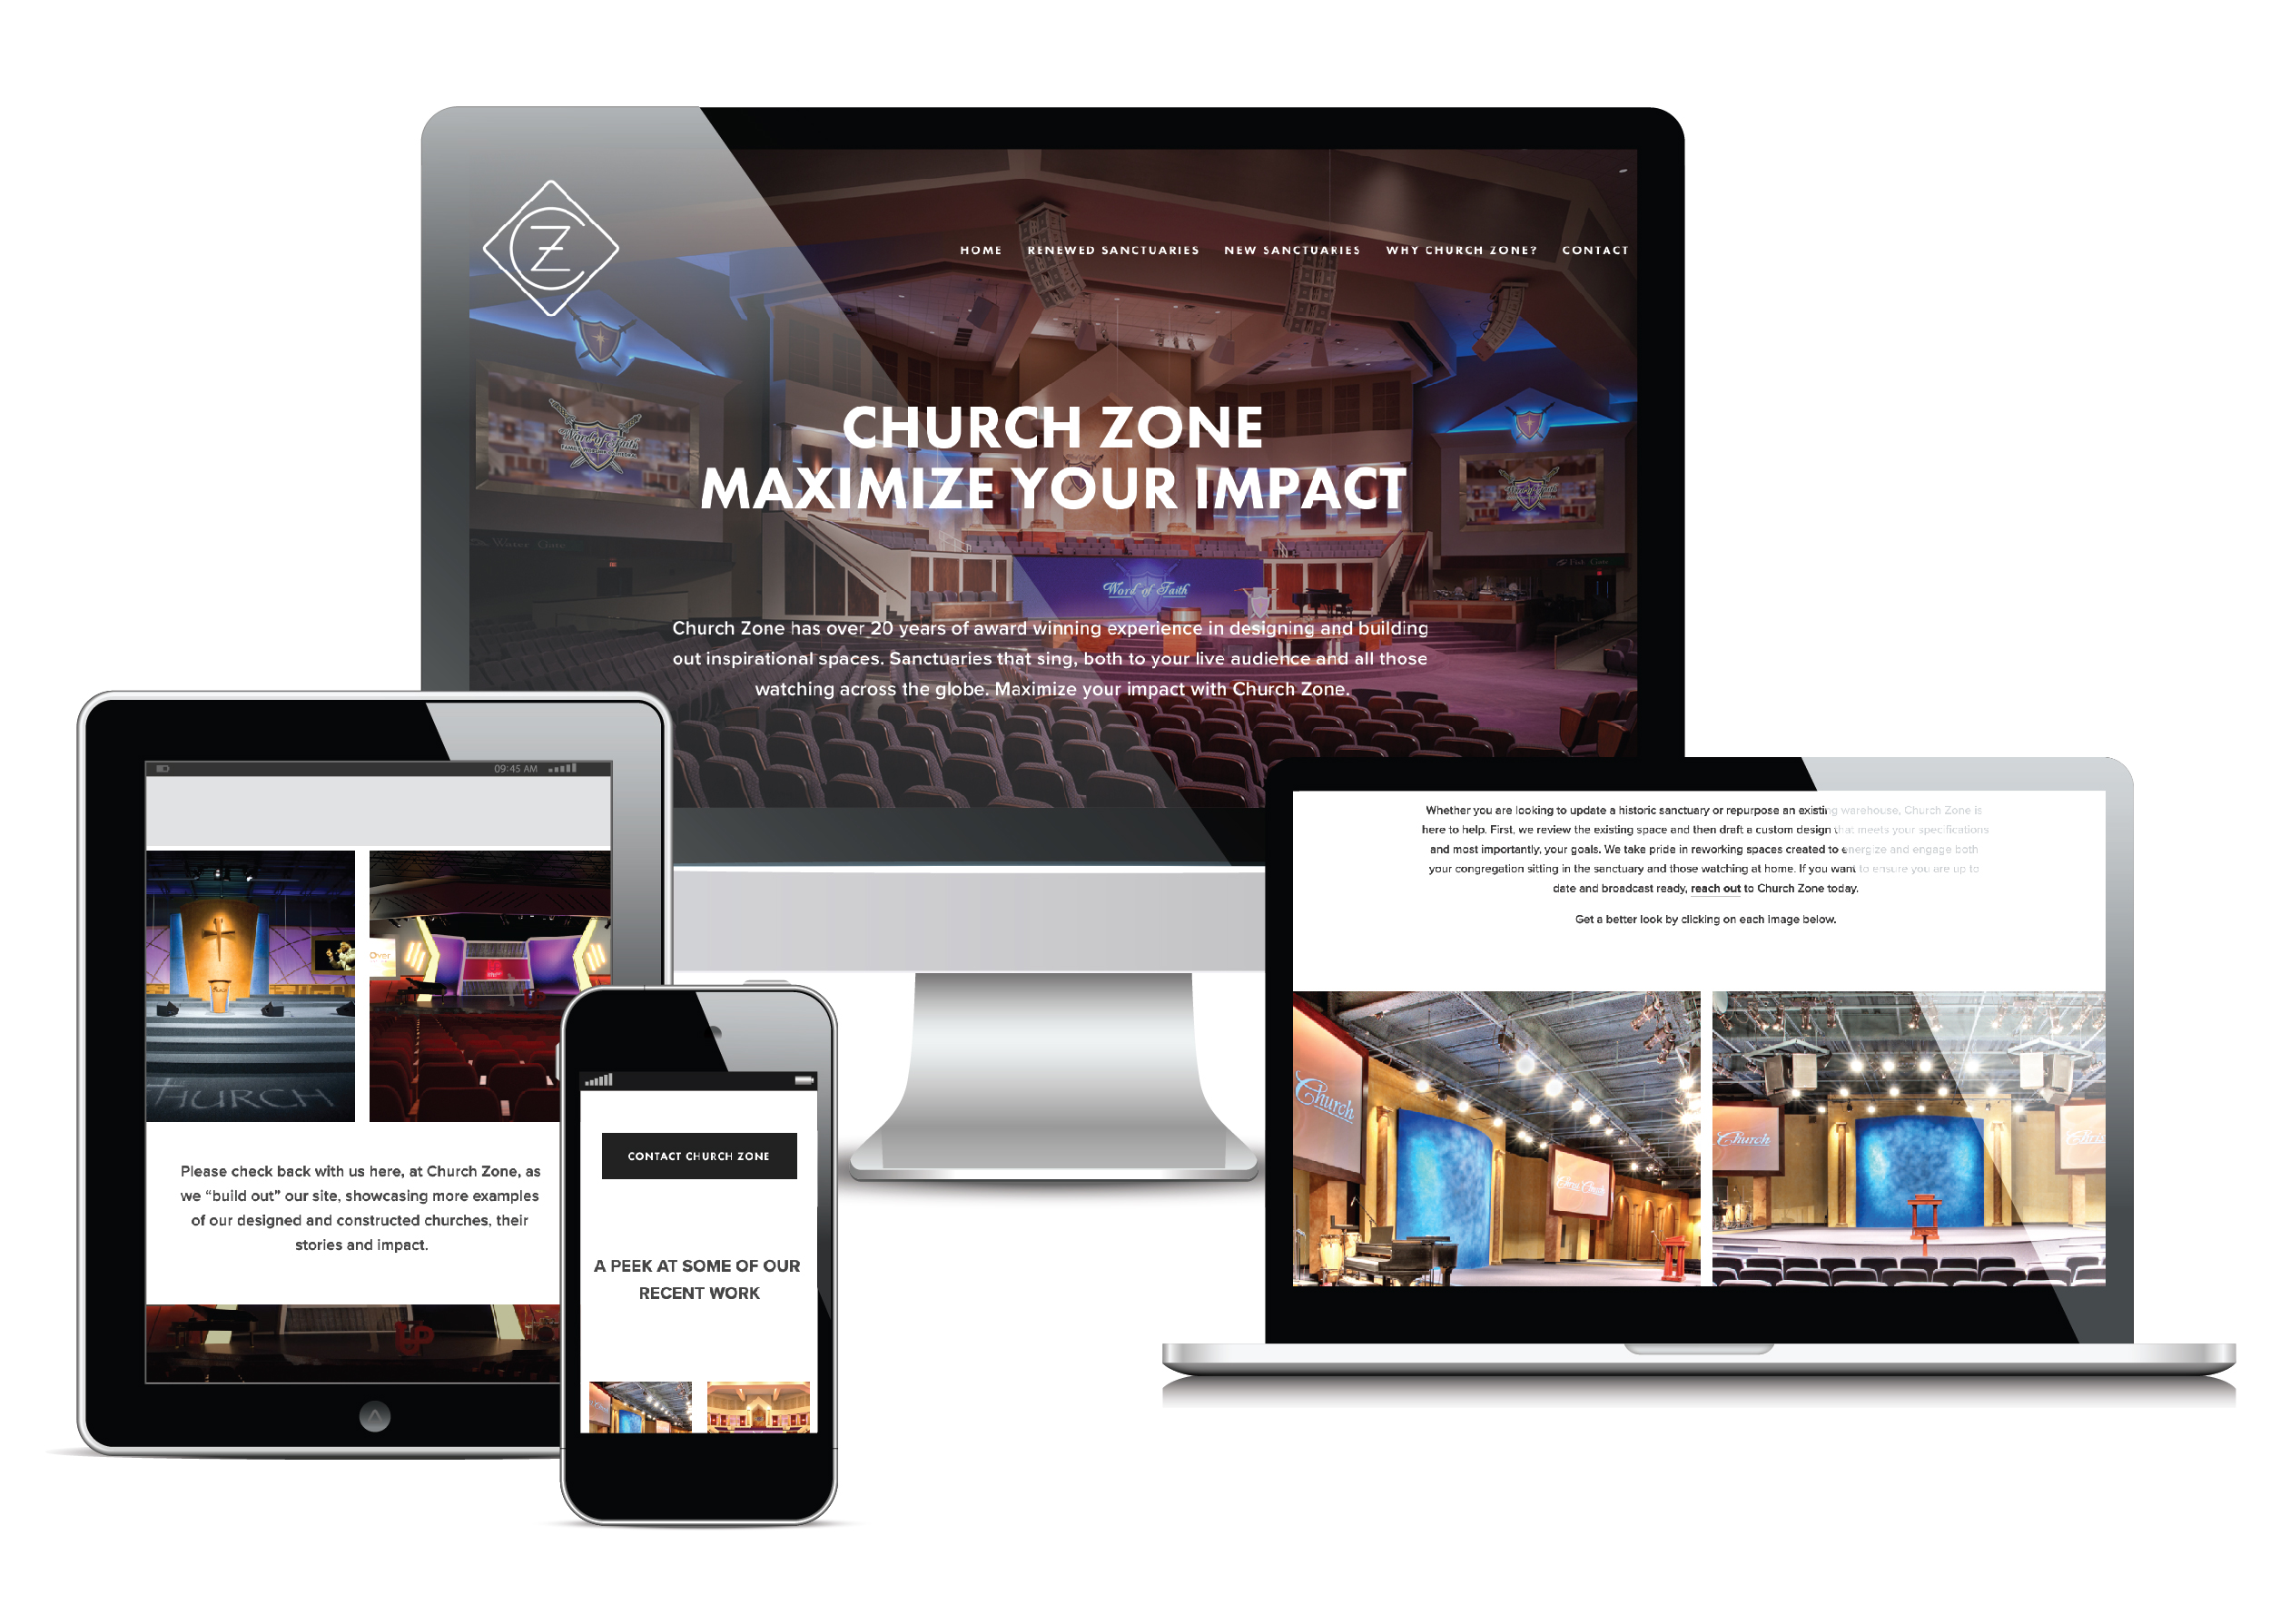 Our responsive designed website emphasized Church Zone's work and case studies.